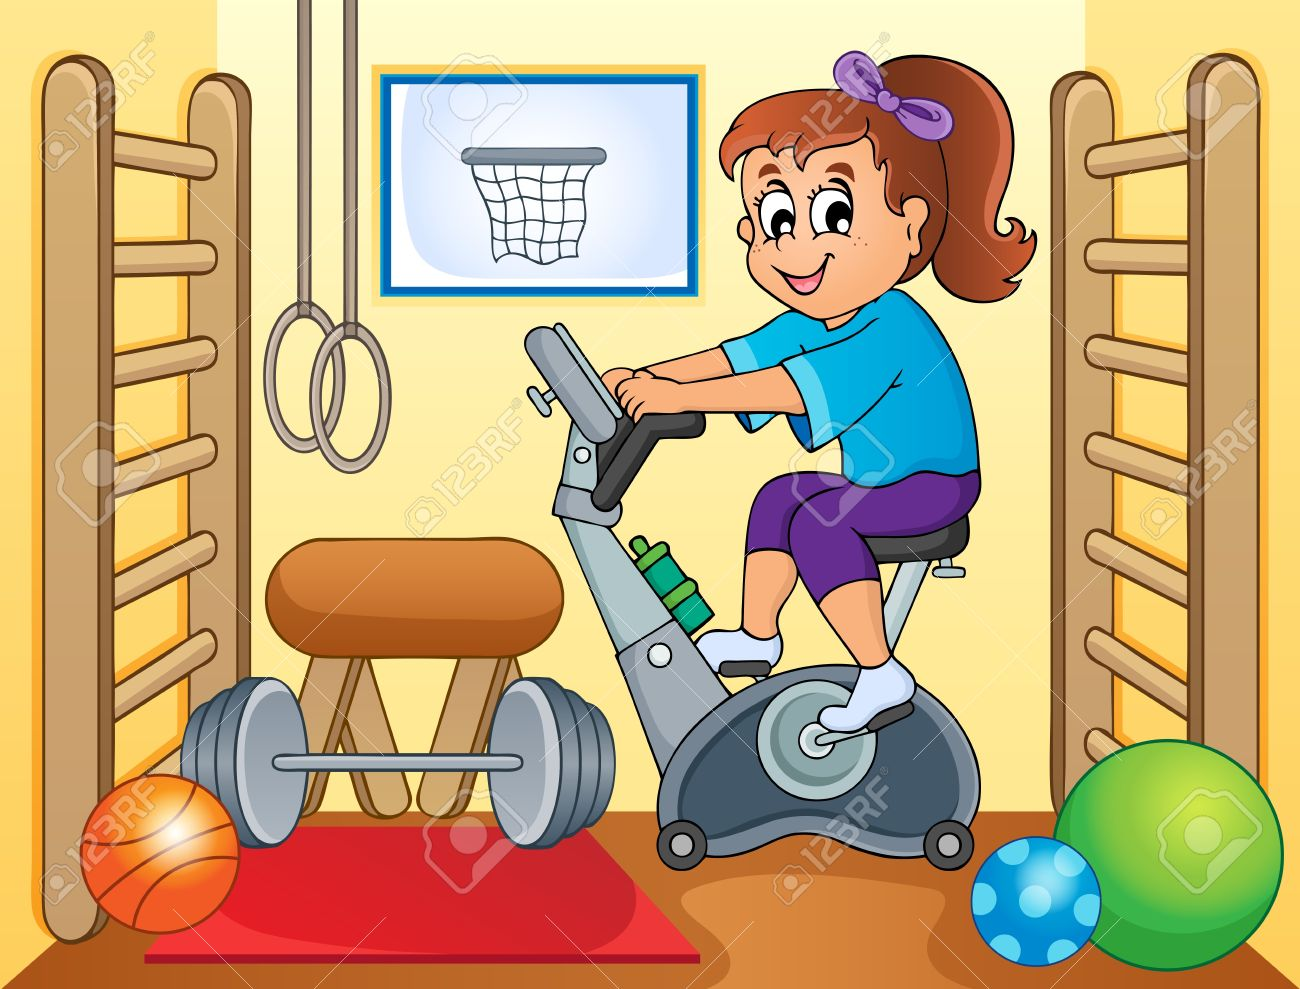 Image result for gym cartoon